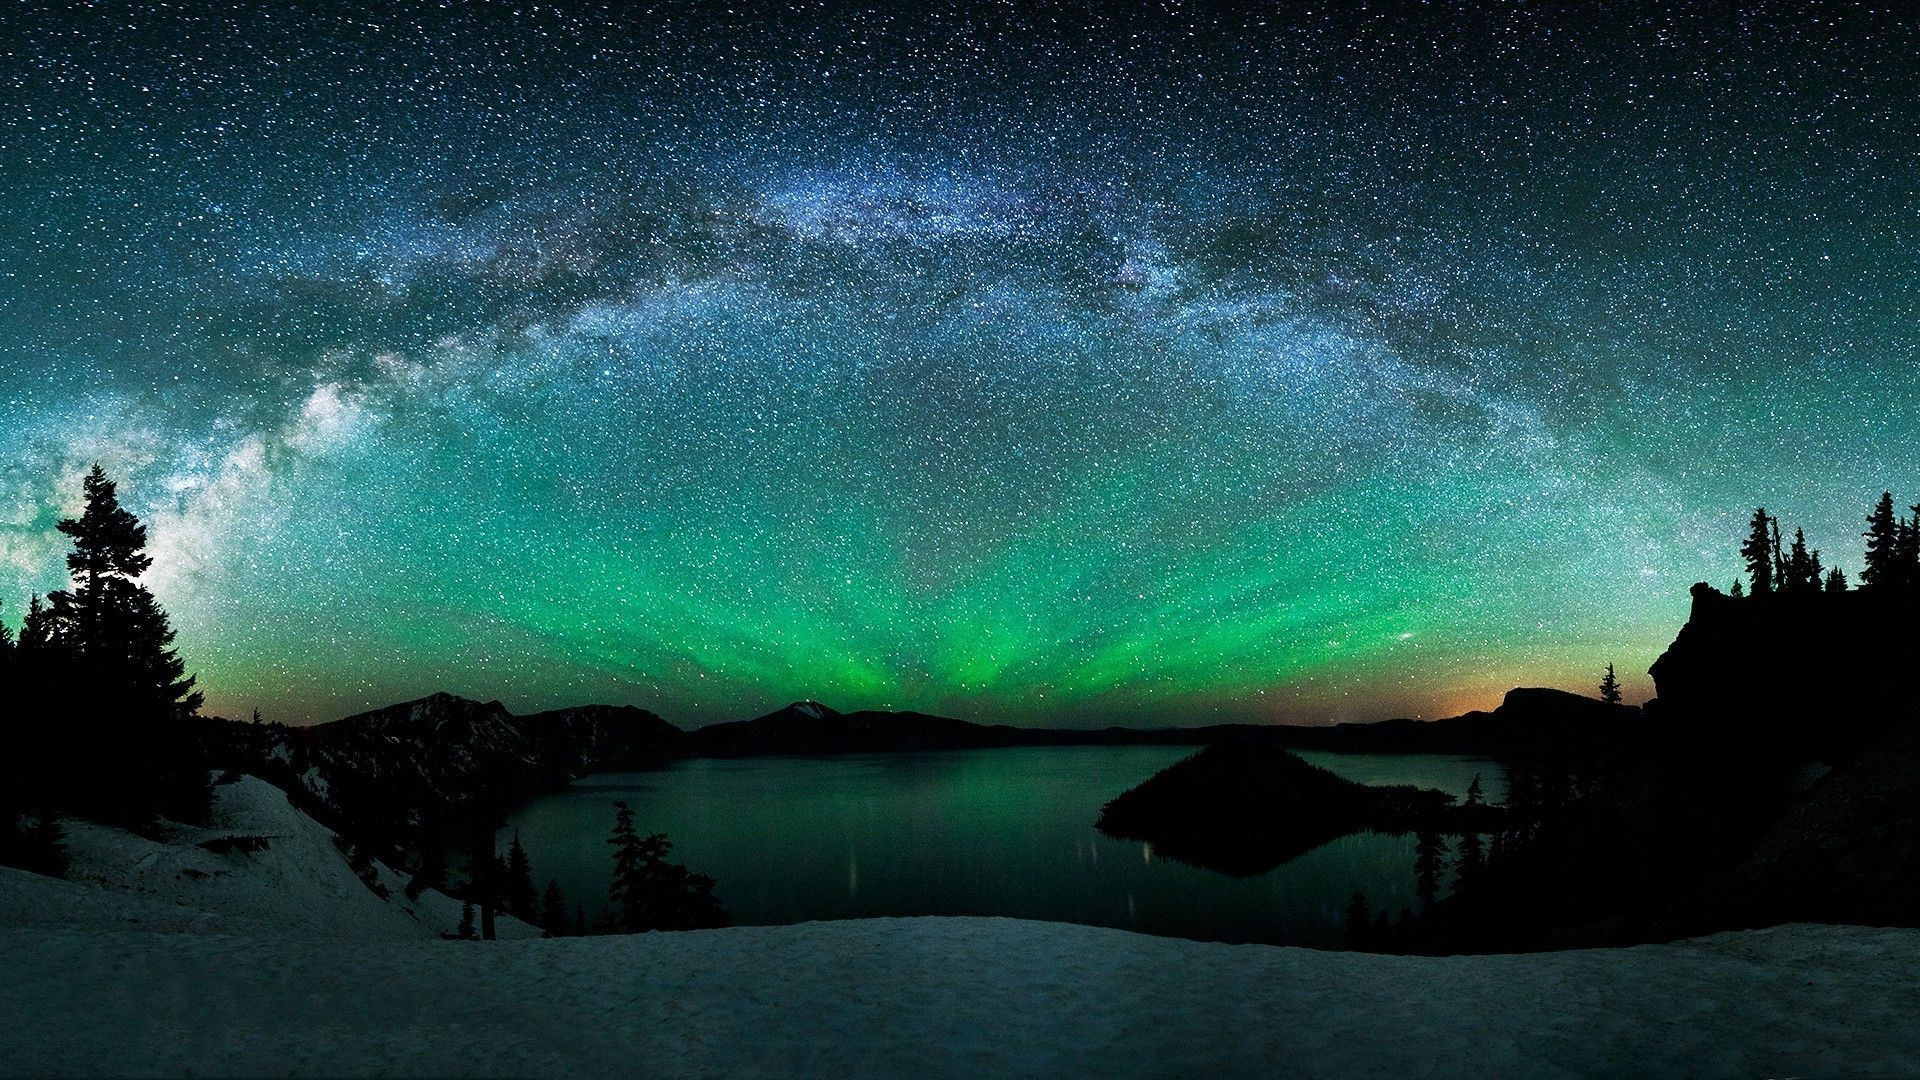 Aurora Borealis And The Milky Way Above The Mountain Lake Wallpaper 4676 Northern Lights Wallpaper Northern Lights Astronomy Pictures